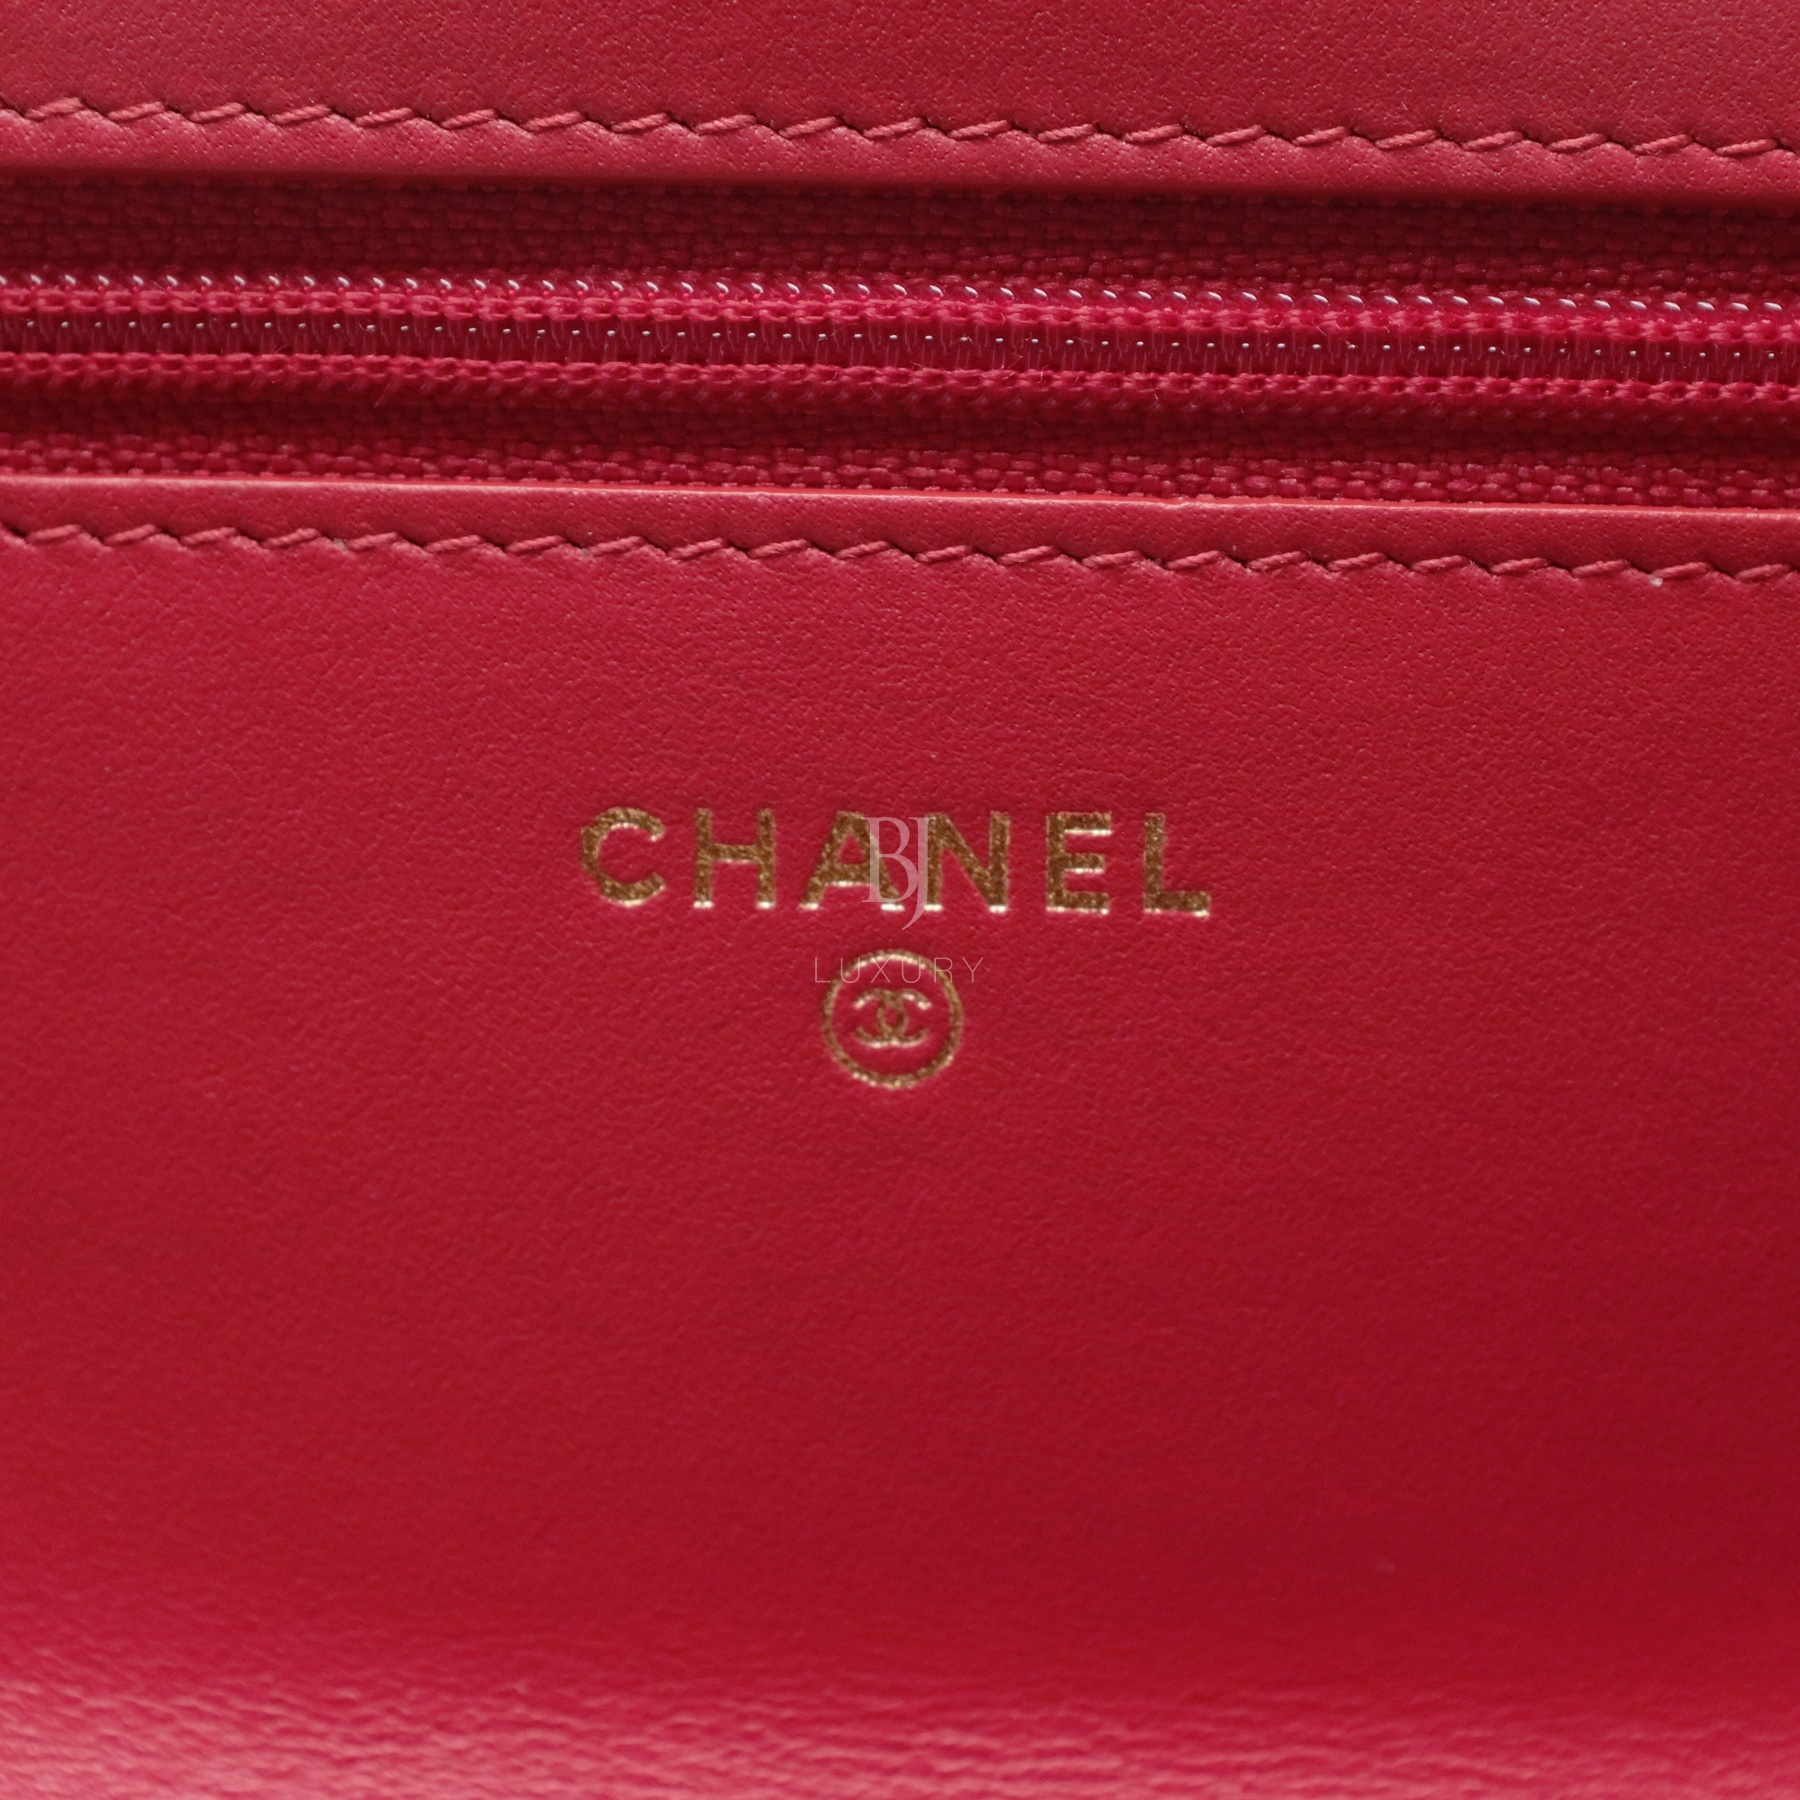 Chanel Wallet On Chain Red Caviar Brushed Gold BJ Luxury 13.jpg